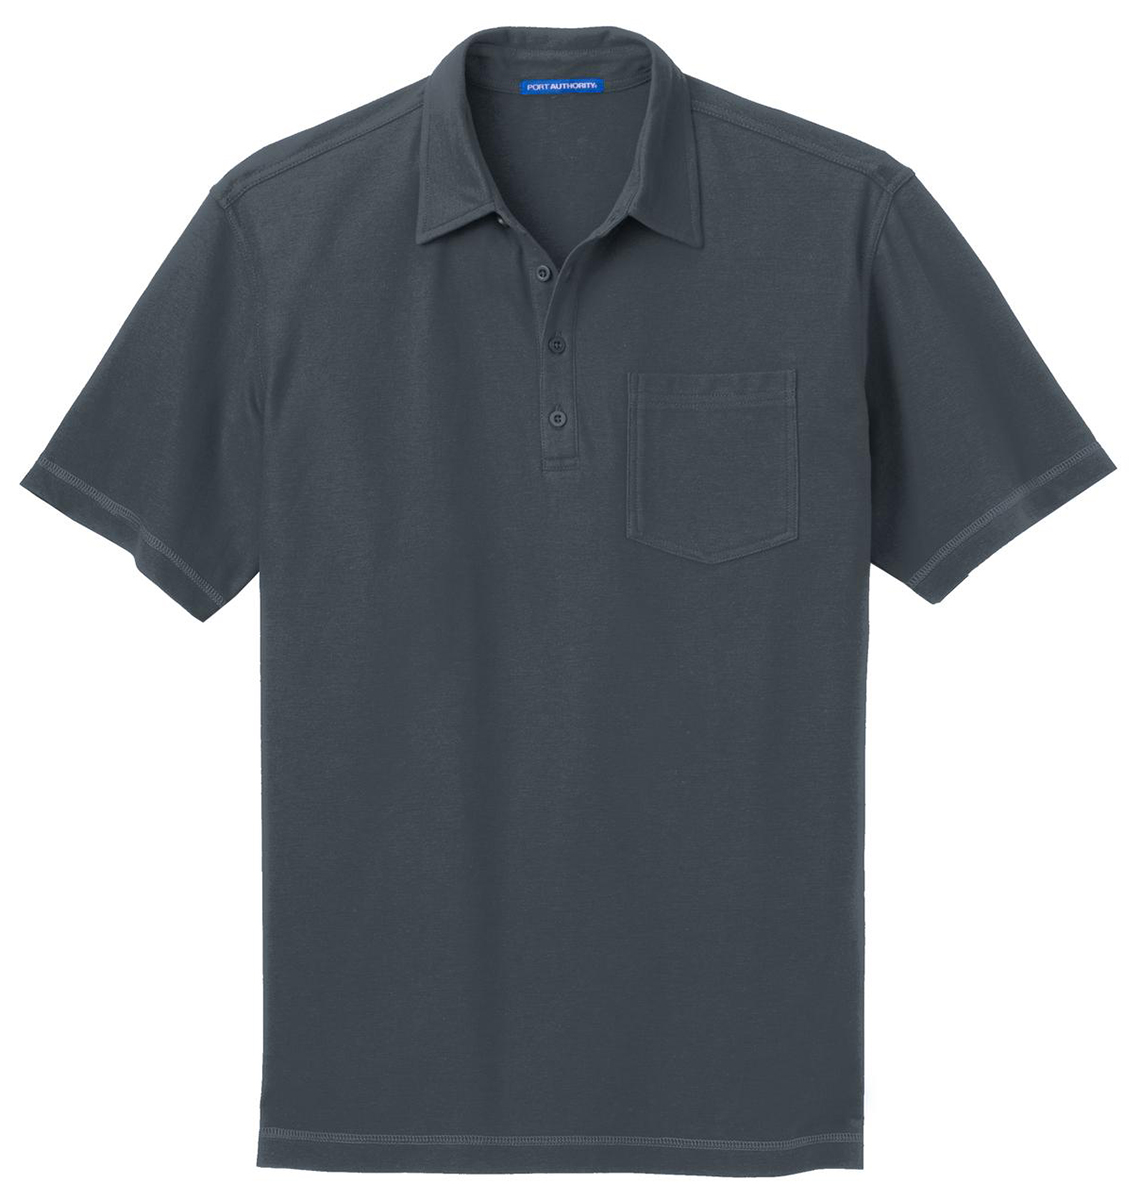 Port-Authority-Men-039-s-New-Golf-Short-Sleeve-Wrinkle-Free-Pocket-Polo-Shirt-K559 thumbnail 11